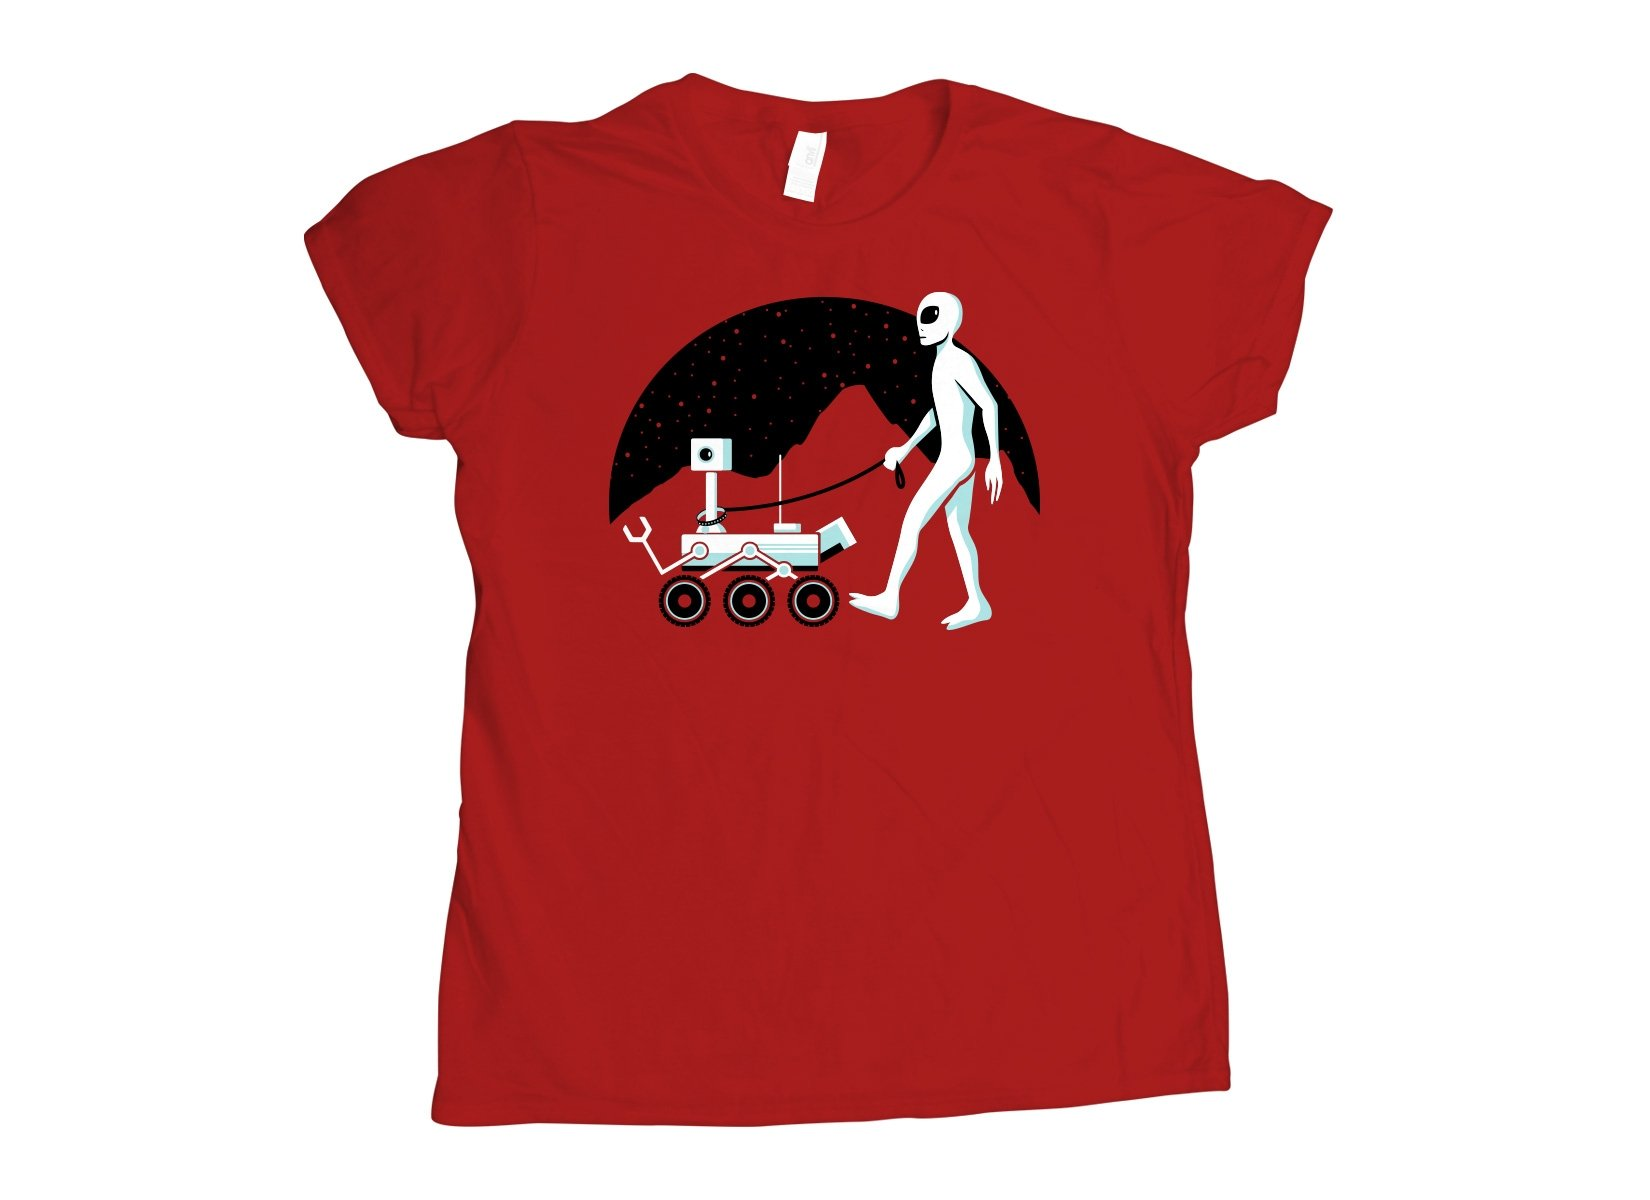 Mars Rover on Womens T-Shirt